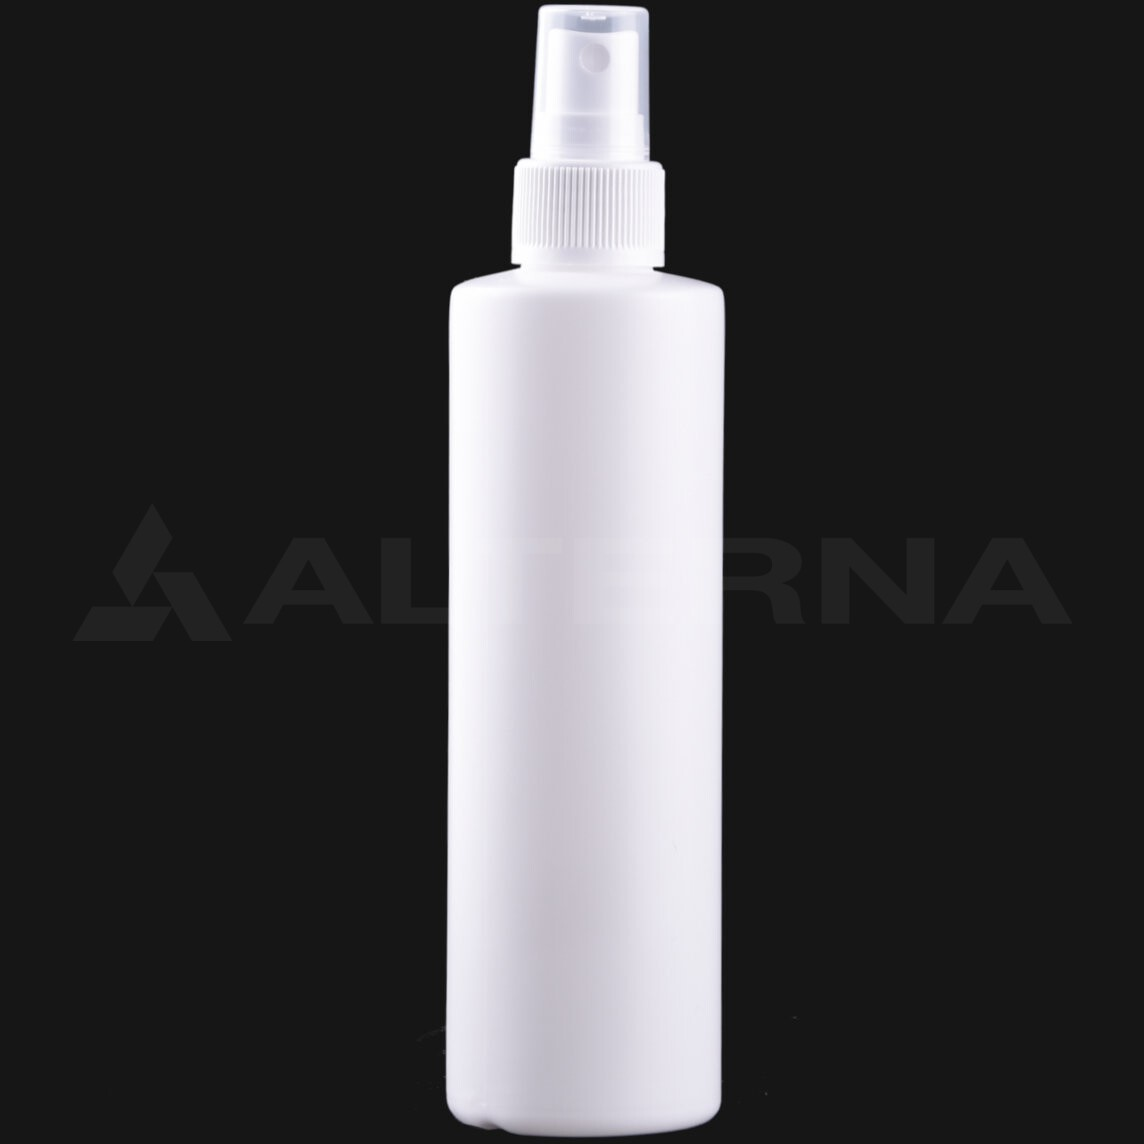 250 ml HDPE Bottle with 24 mm Sprayer